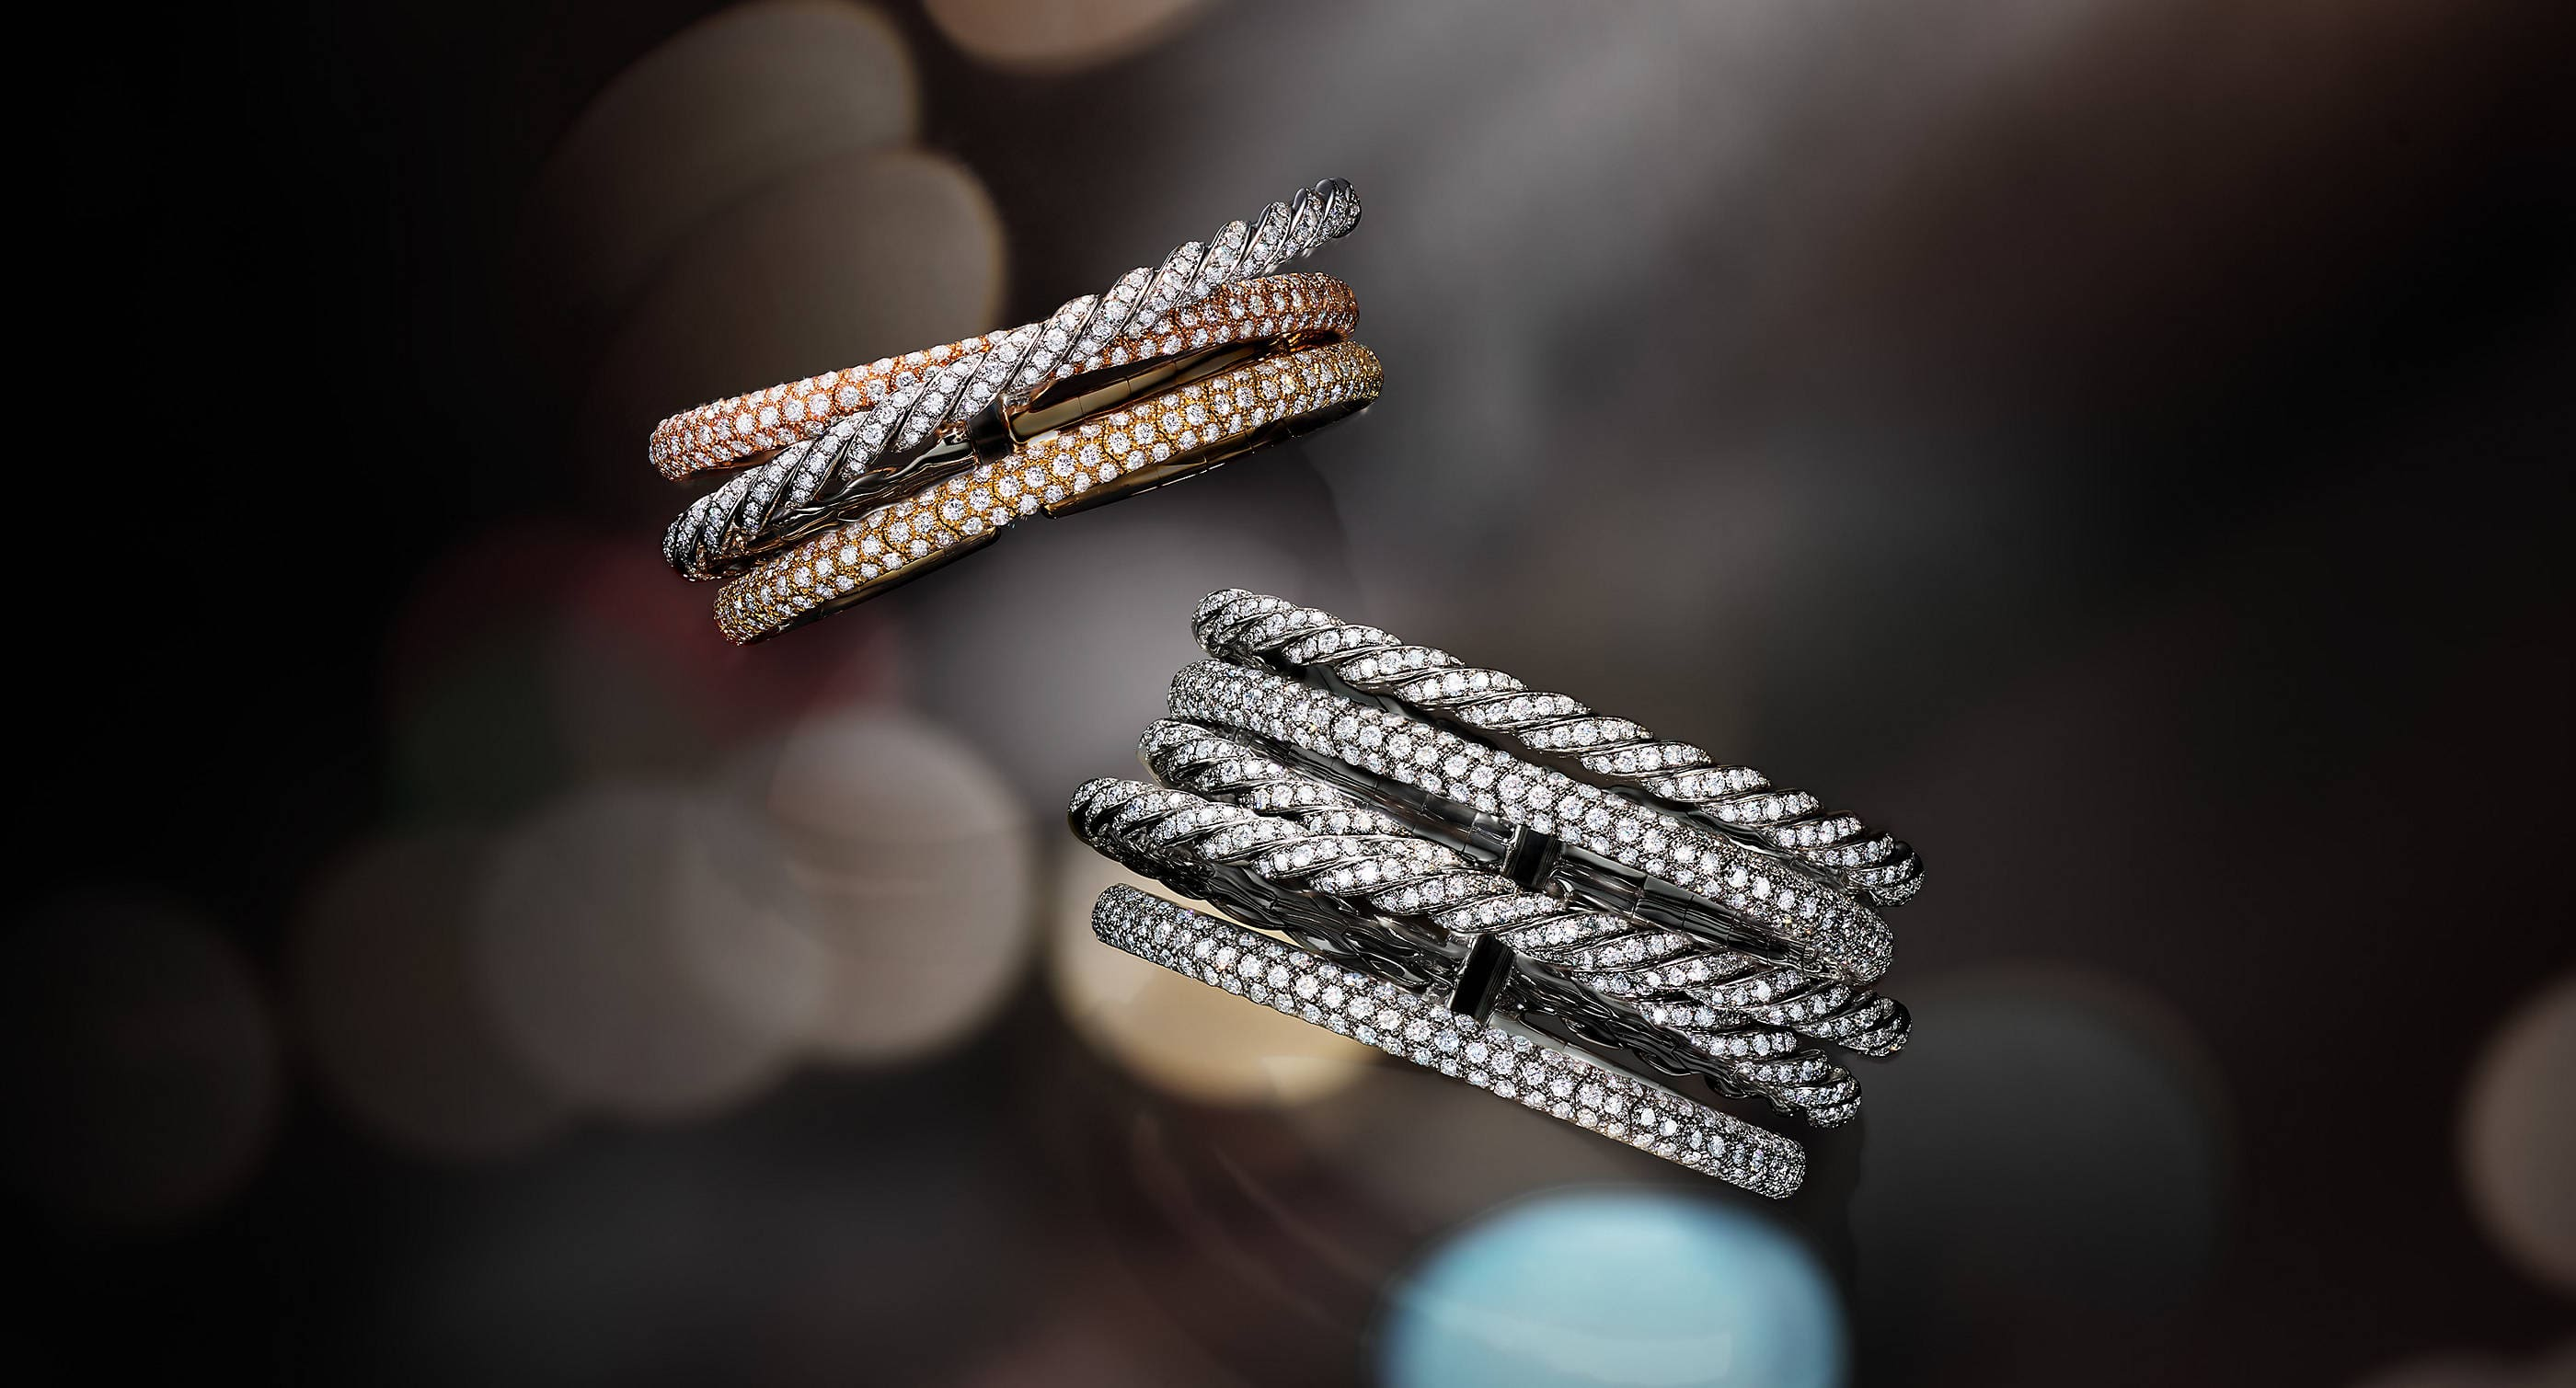 An image of two David Yurman Pavéflex multi-row cuff bracelets suspended in front of a black-and-grey surface with colorful reflections of light. One bracelet is crafted from all 18K white gold with pavé diamonds while the other is crafted from 18K yellow, white and rose gold with pavé diamonds..